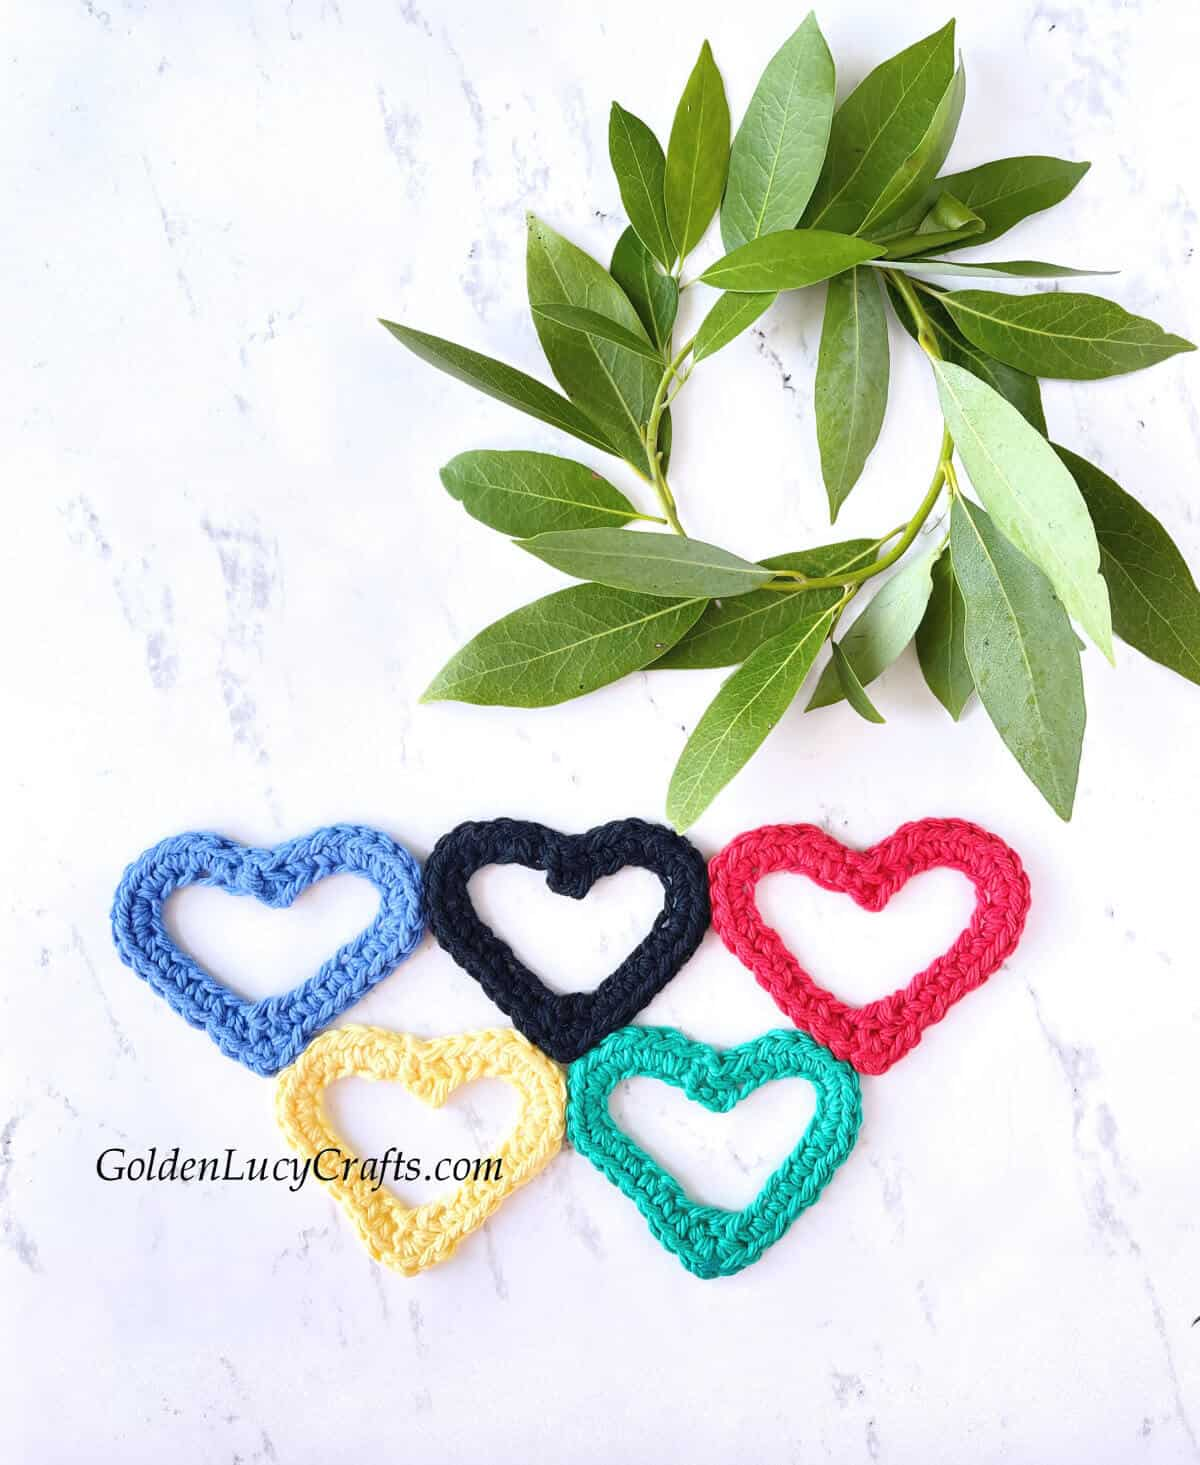 Crochet heart-shaped Olympic rings, round wreath made of green bay tree branch.